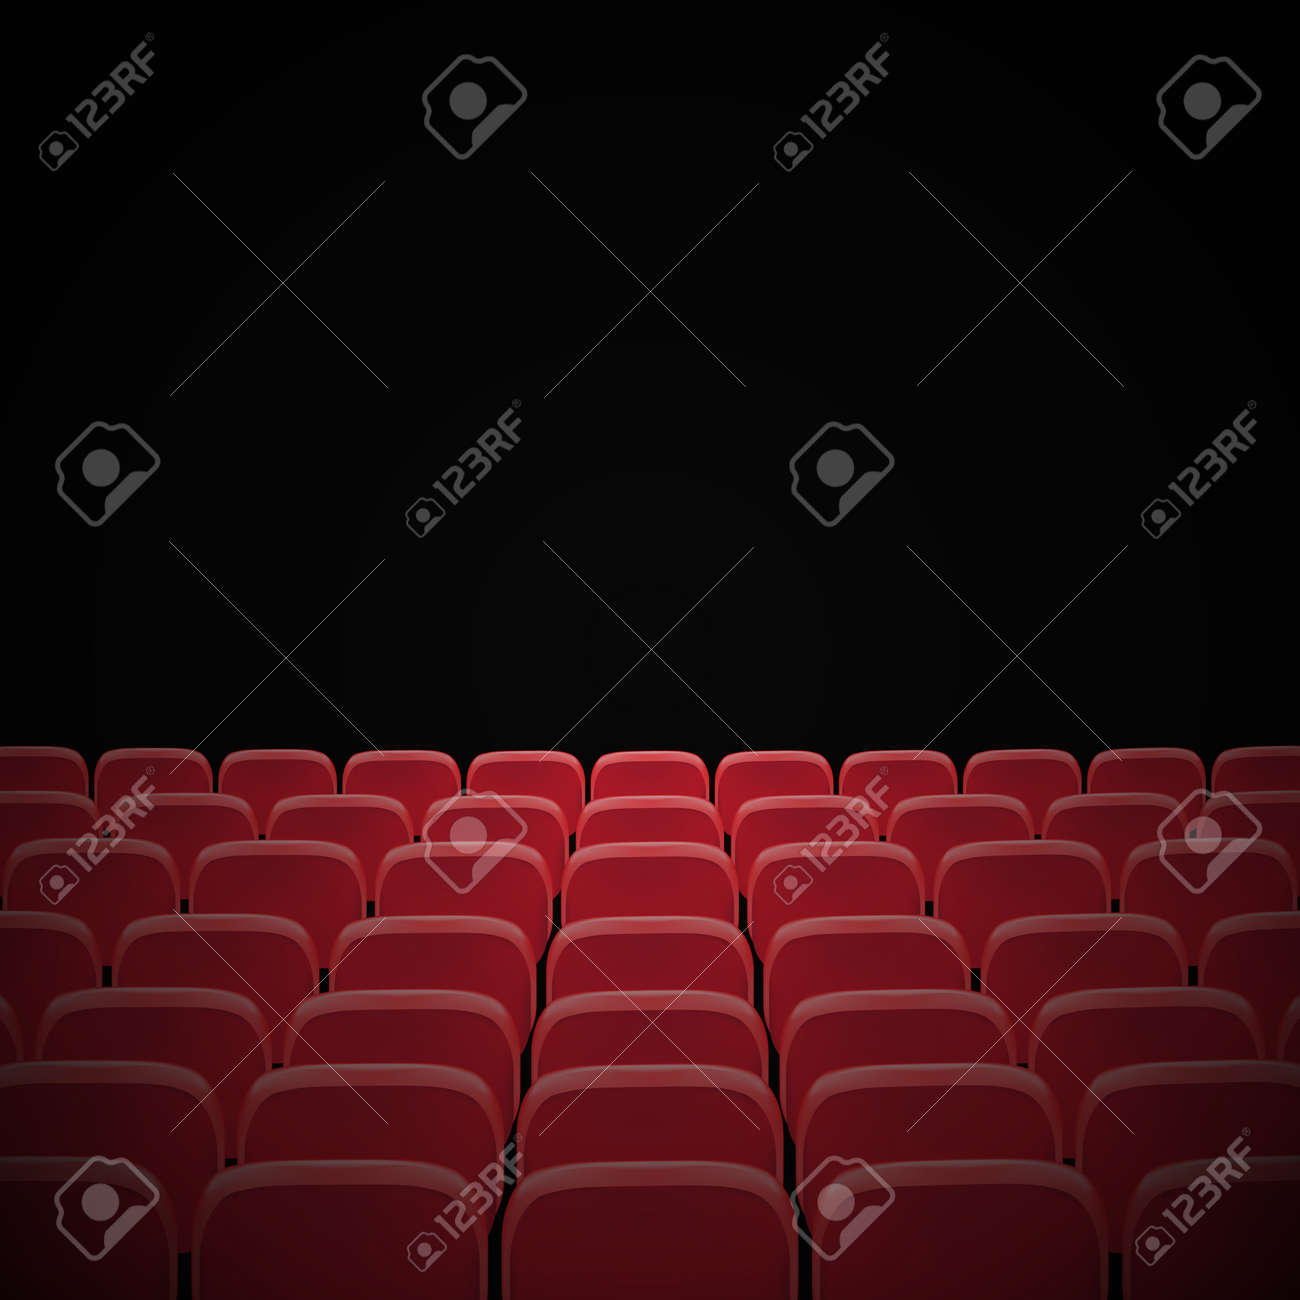 Rows Of Red Cinema Or Theater Seats In Front Of Black Blank Screen Royalty Free Cliparts Vectors And Stock Illustration Image 118897516